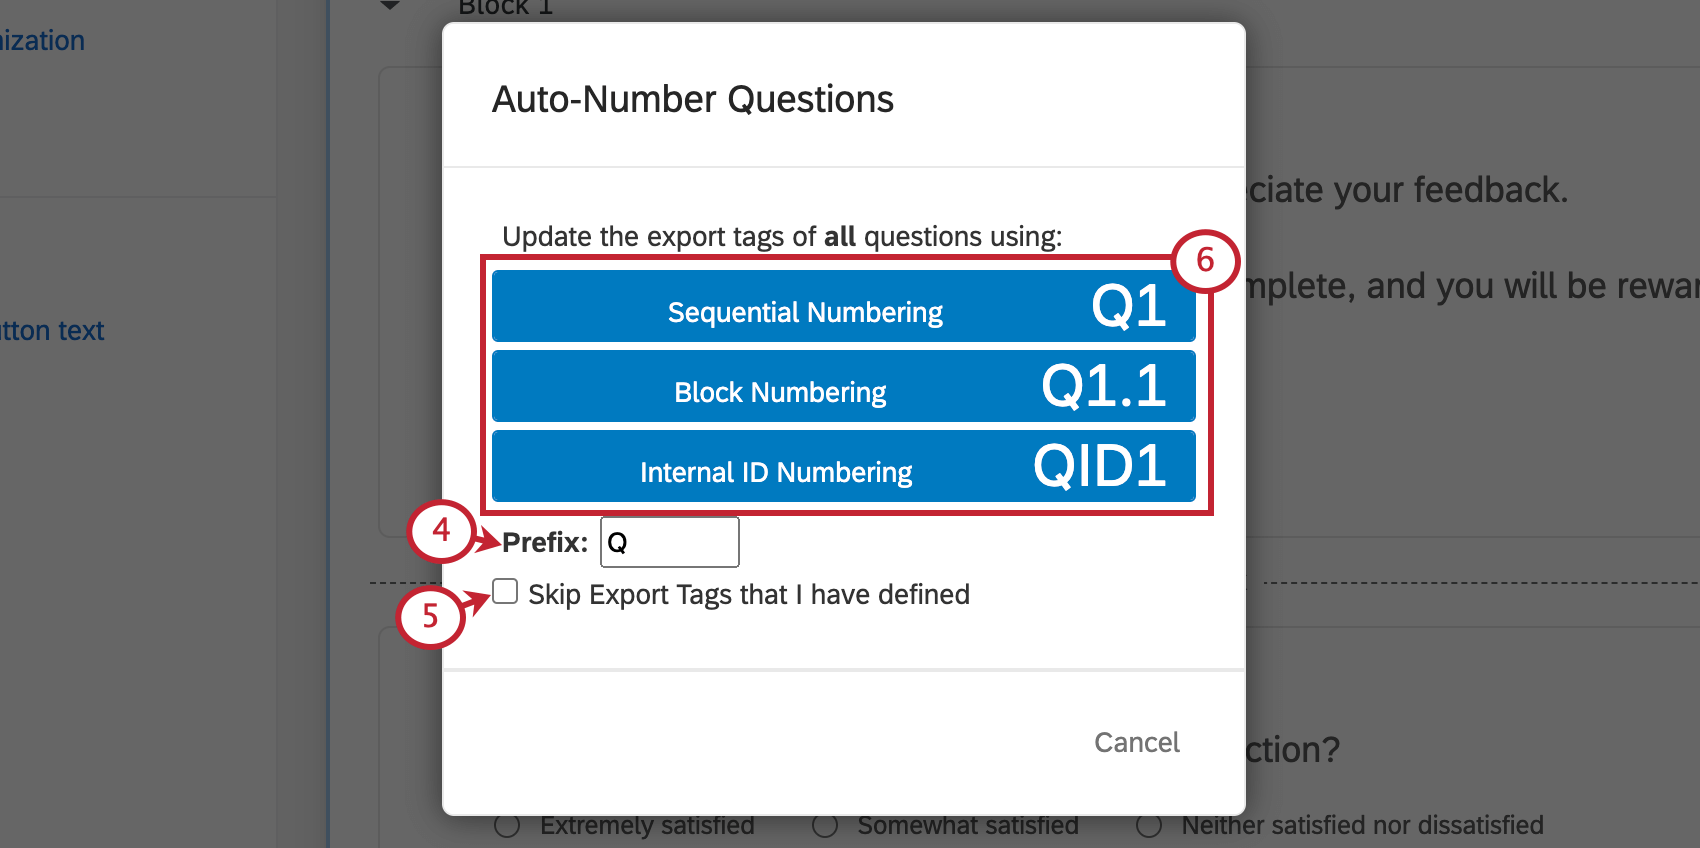 Auto-Number Questions window with options listed in blue in the middle